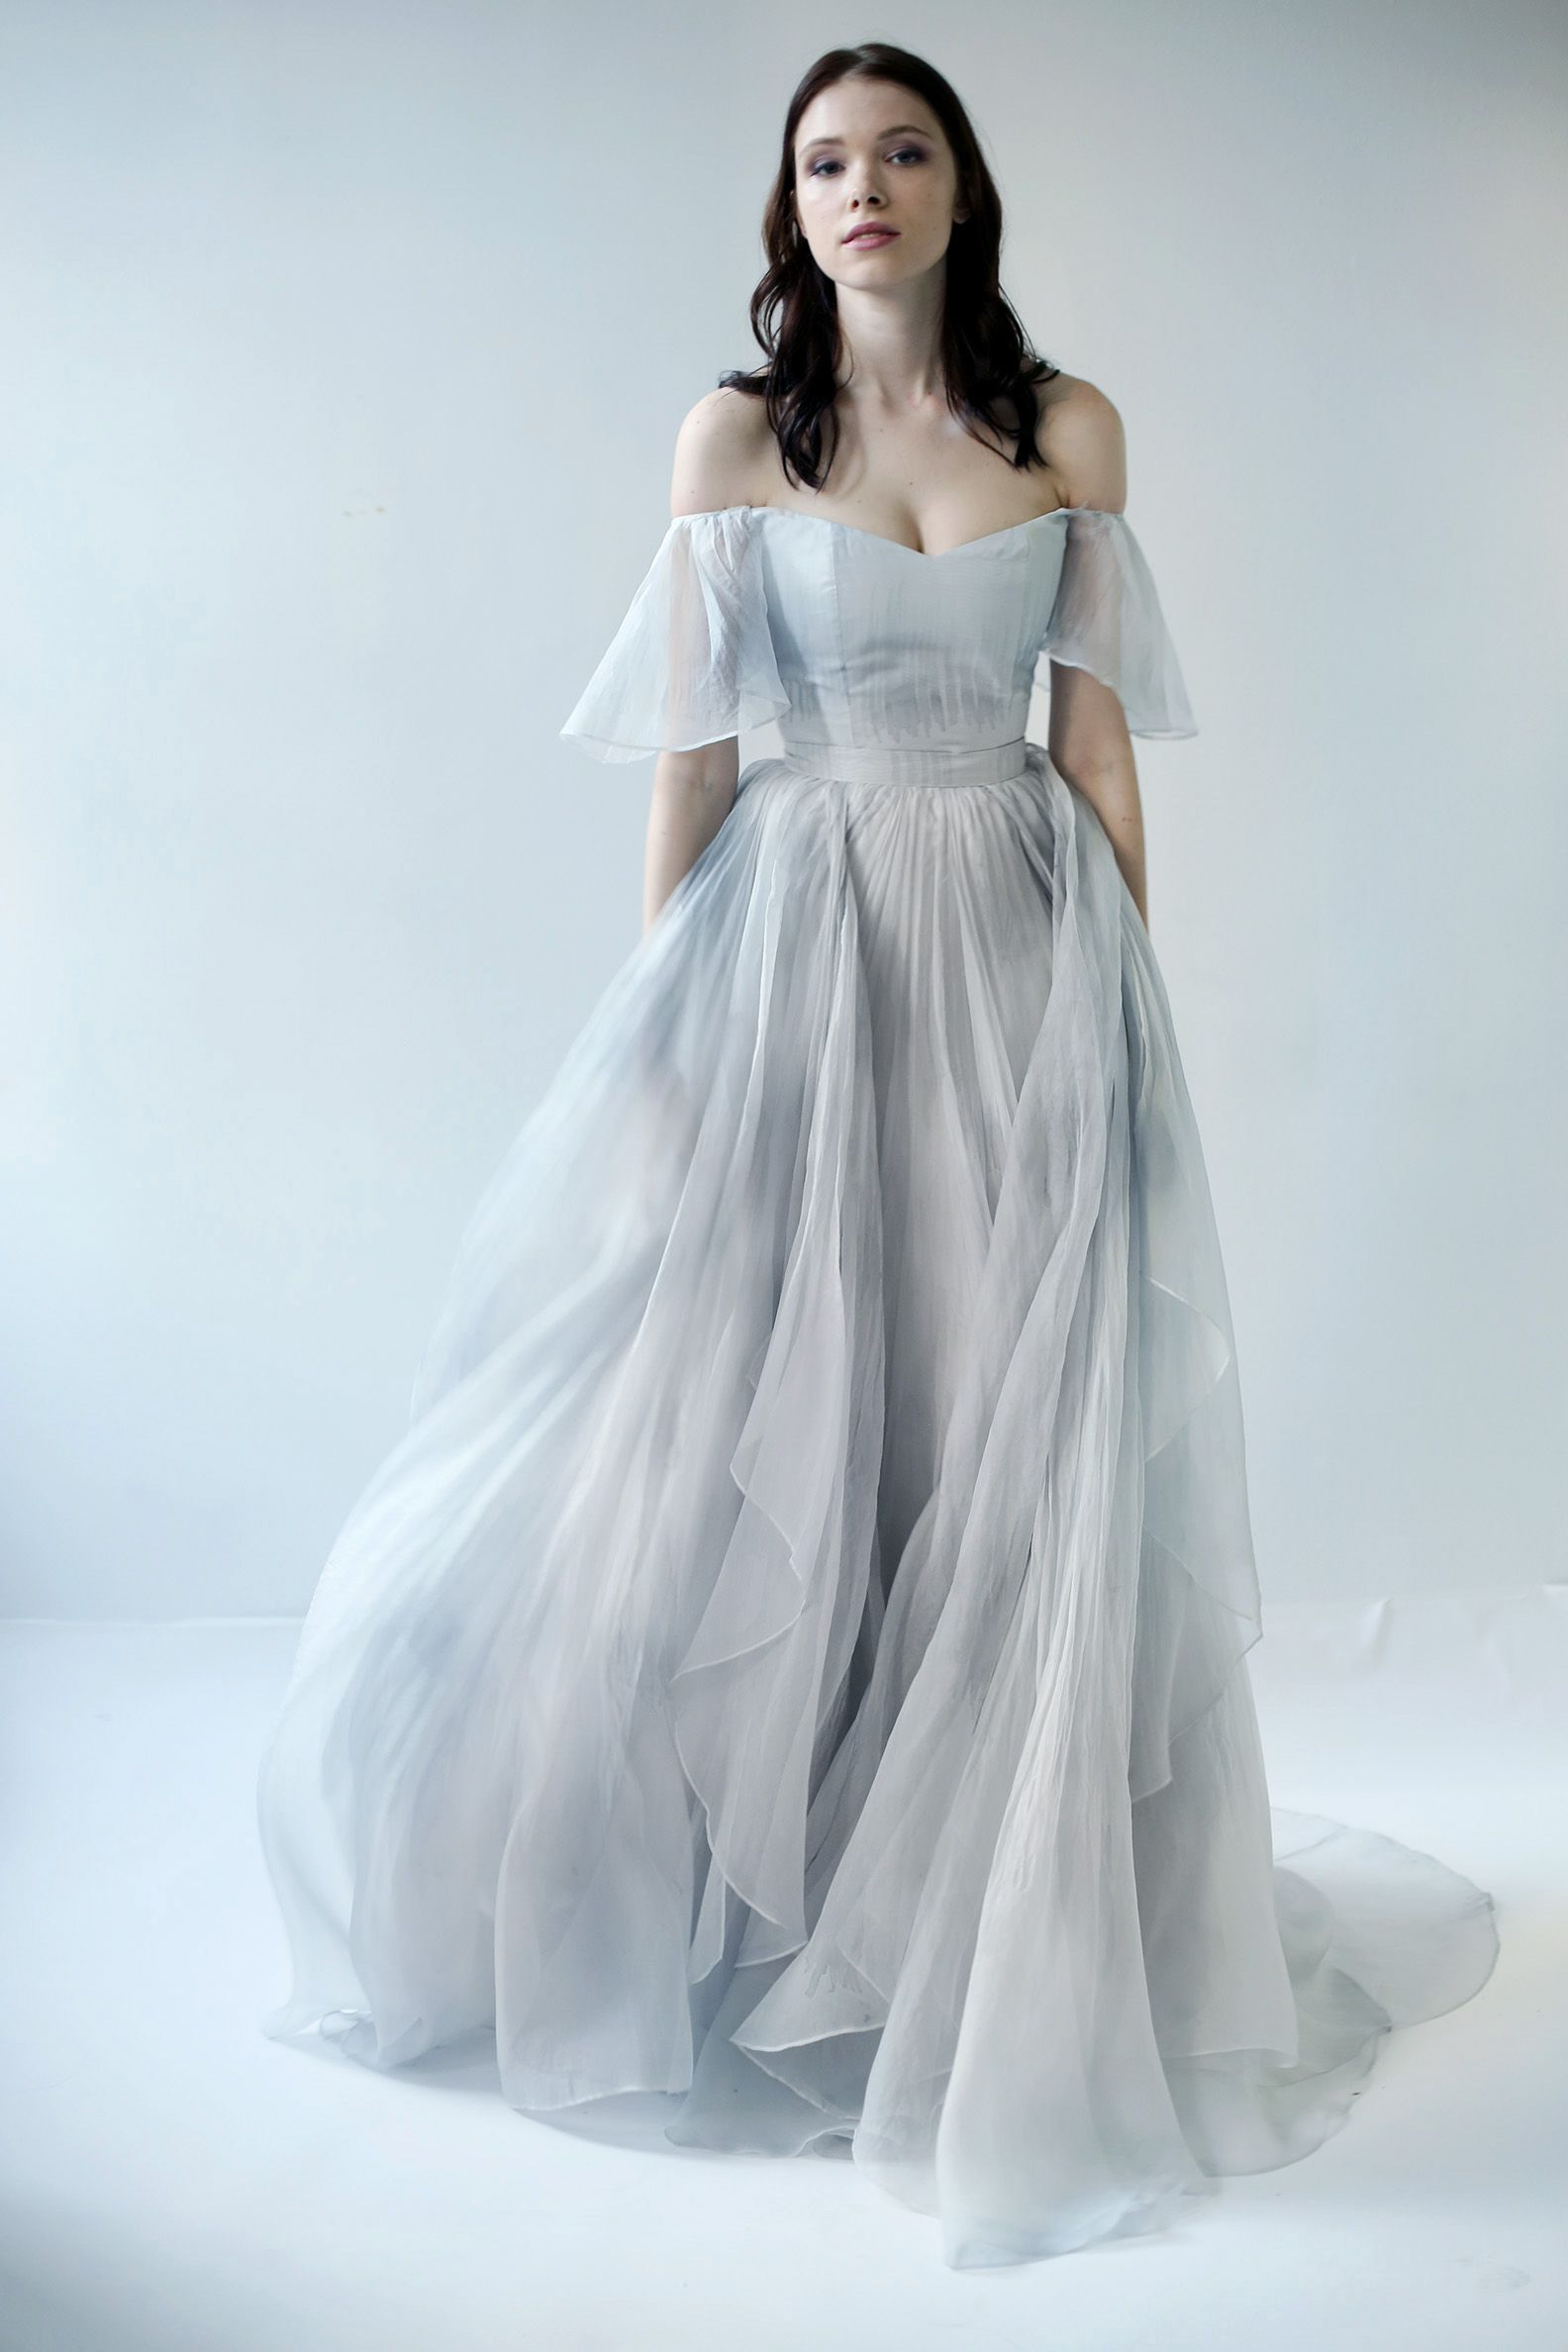 d167cb19a17 The Raincloud skirt is a separates piece. It is a dove gray and blue  printed and textured silk organza .